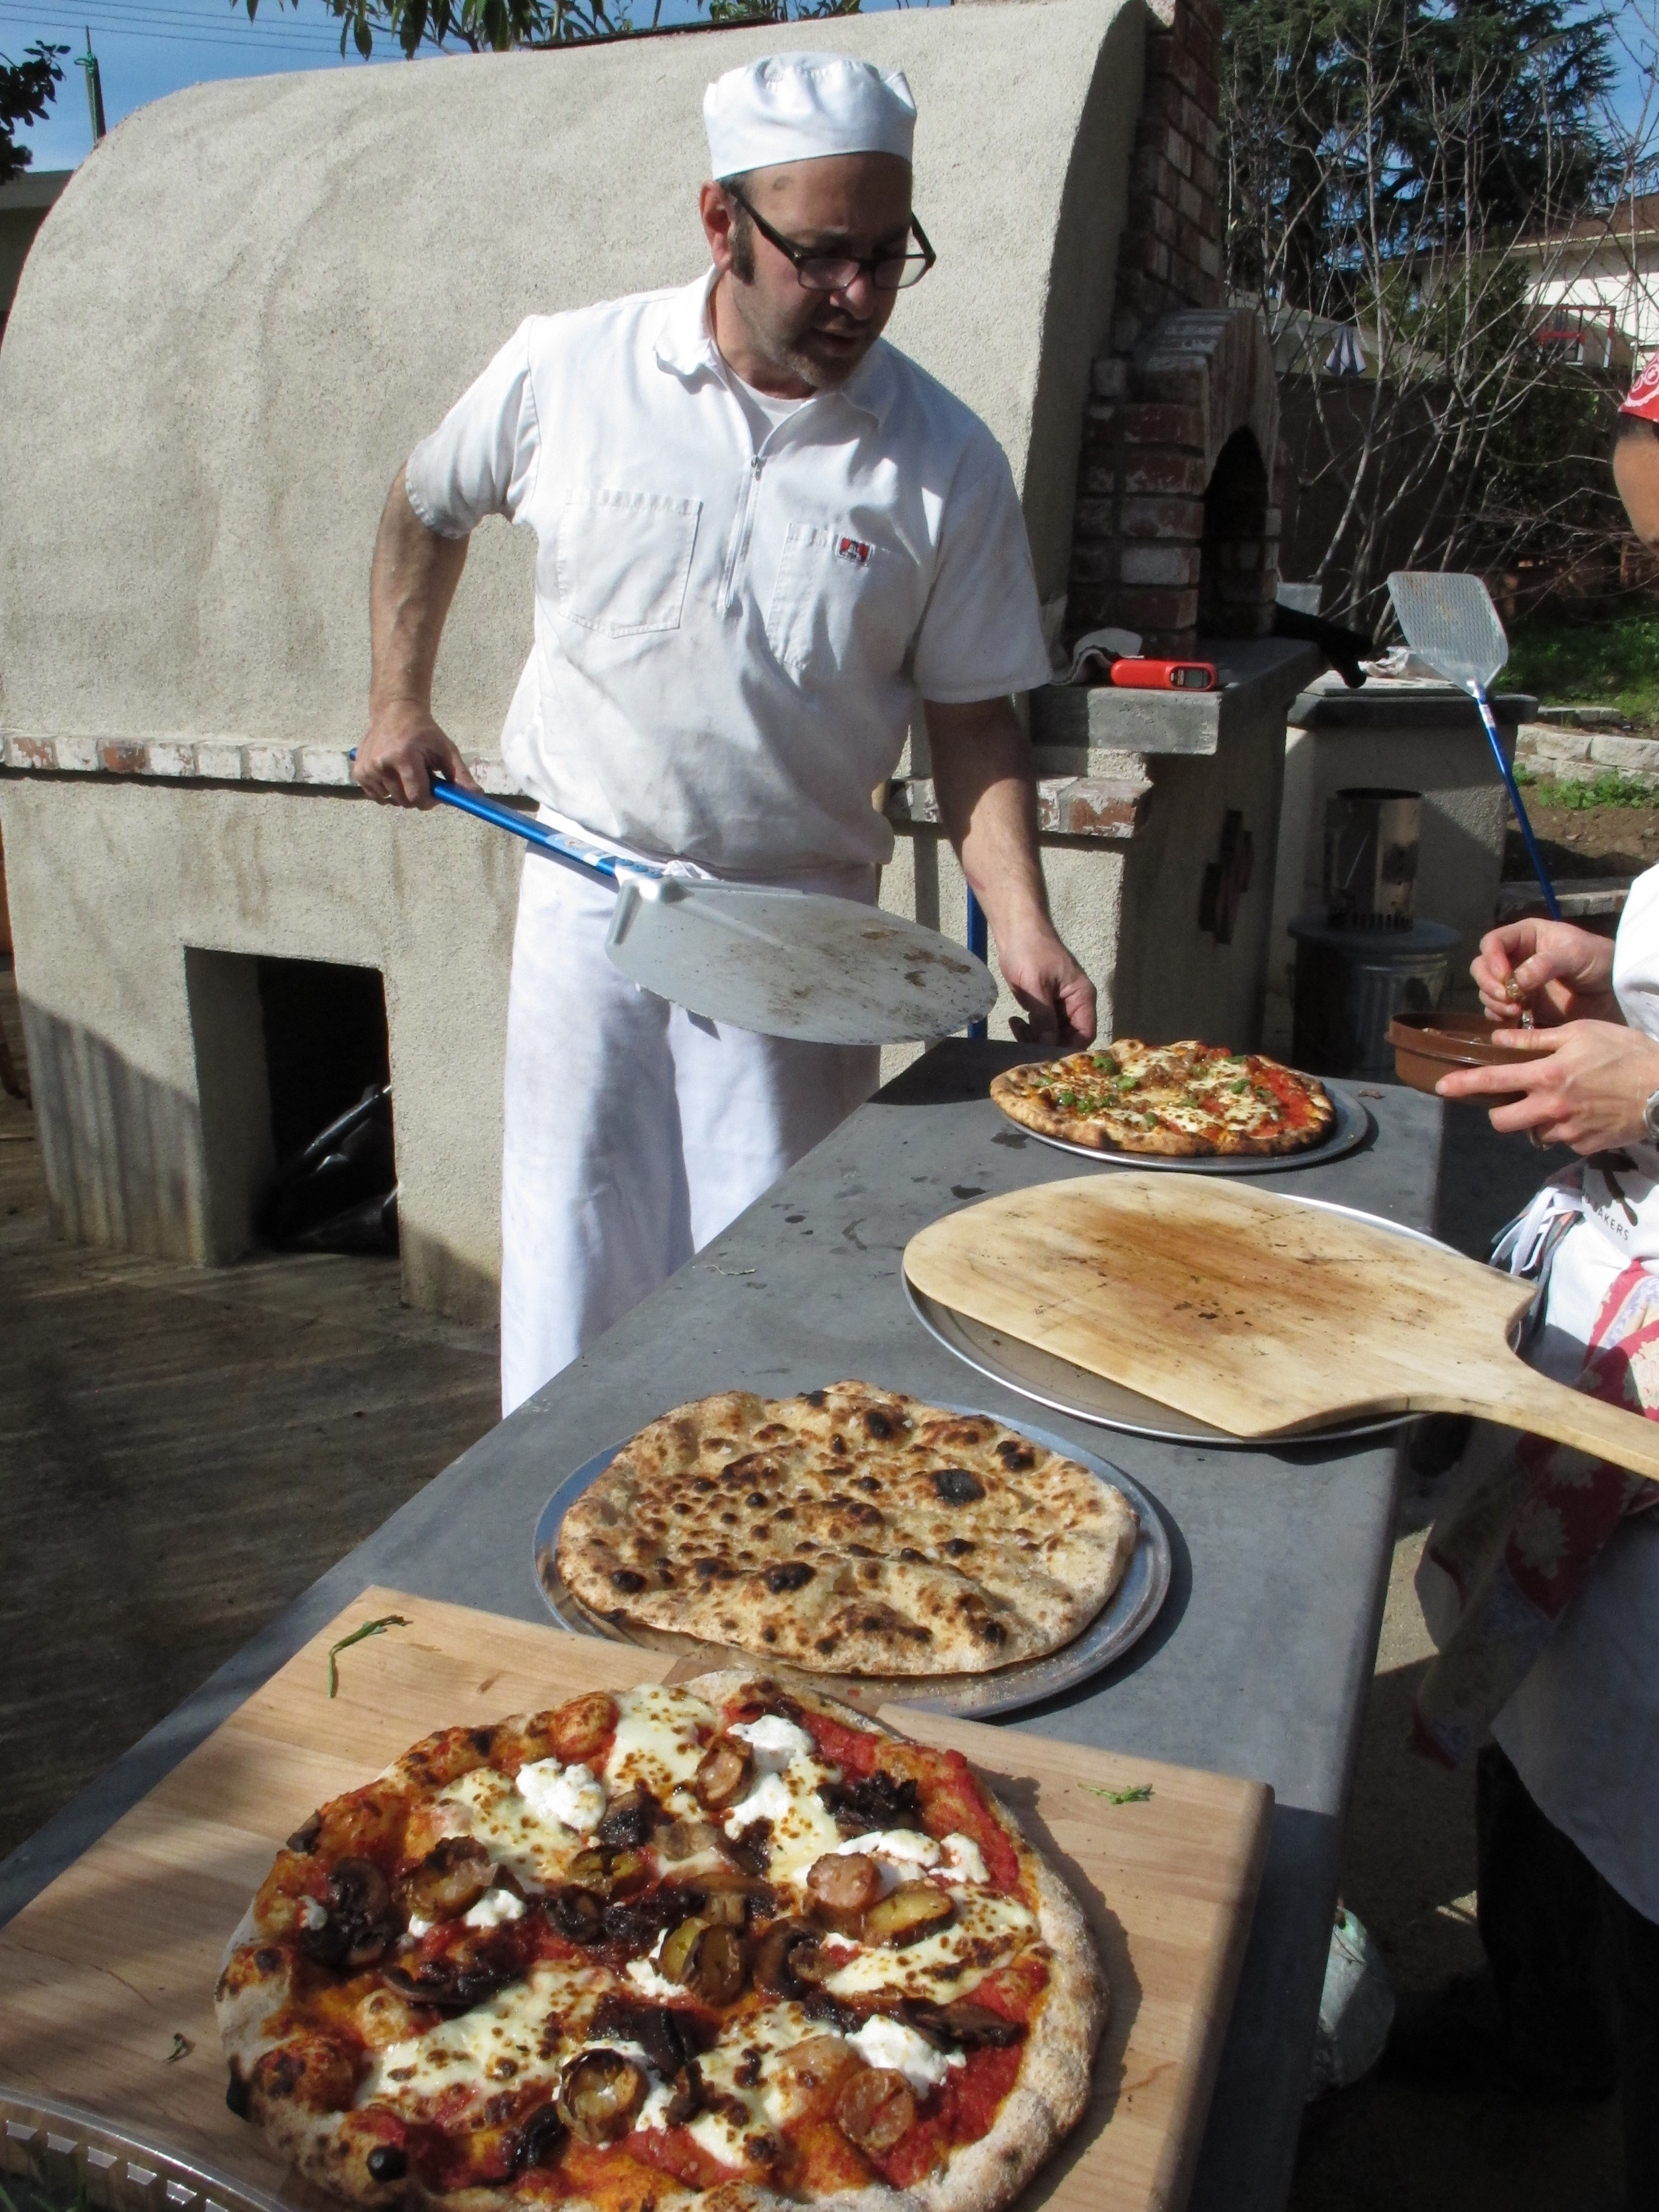 There's always a home for harden cheese in the brick oven pizza